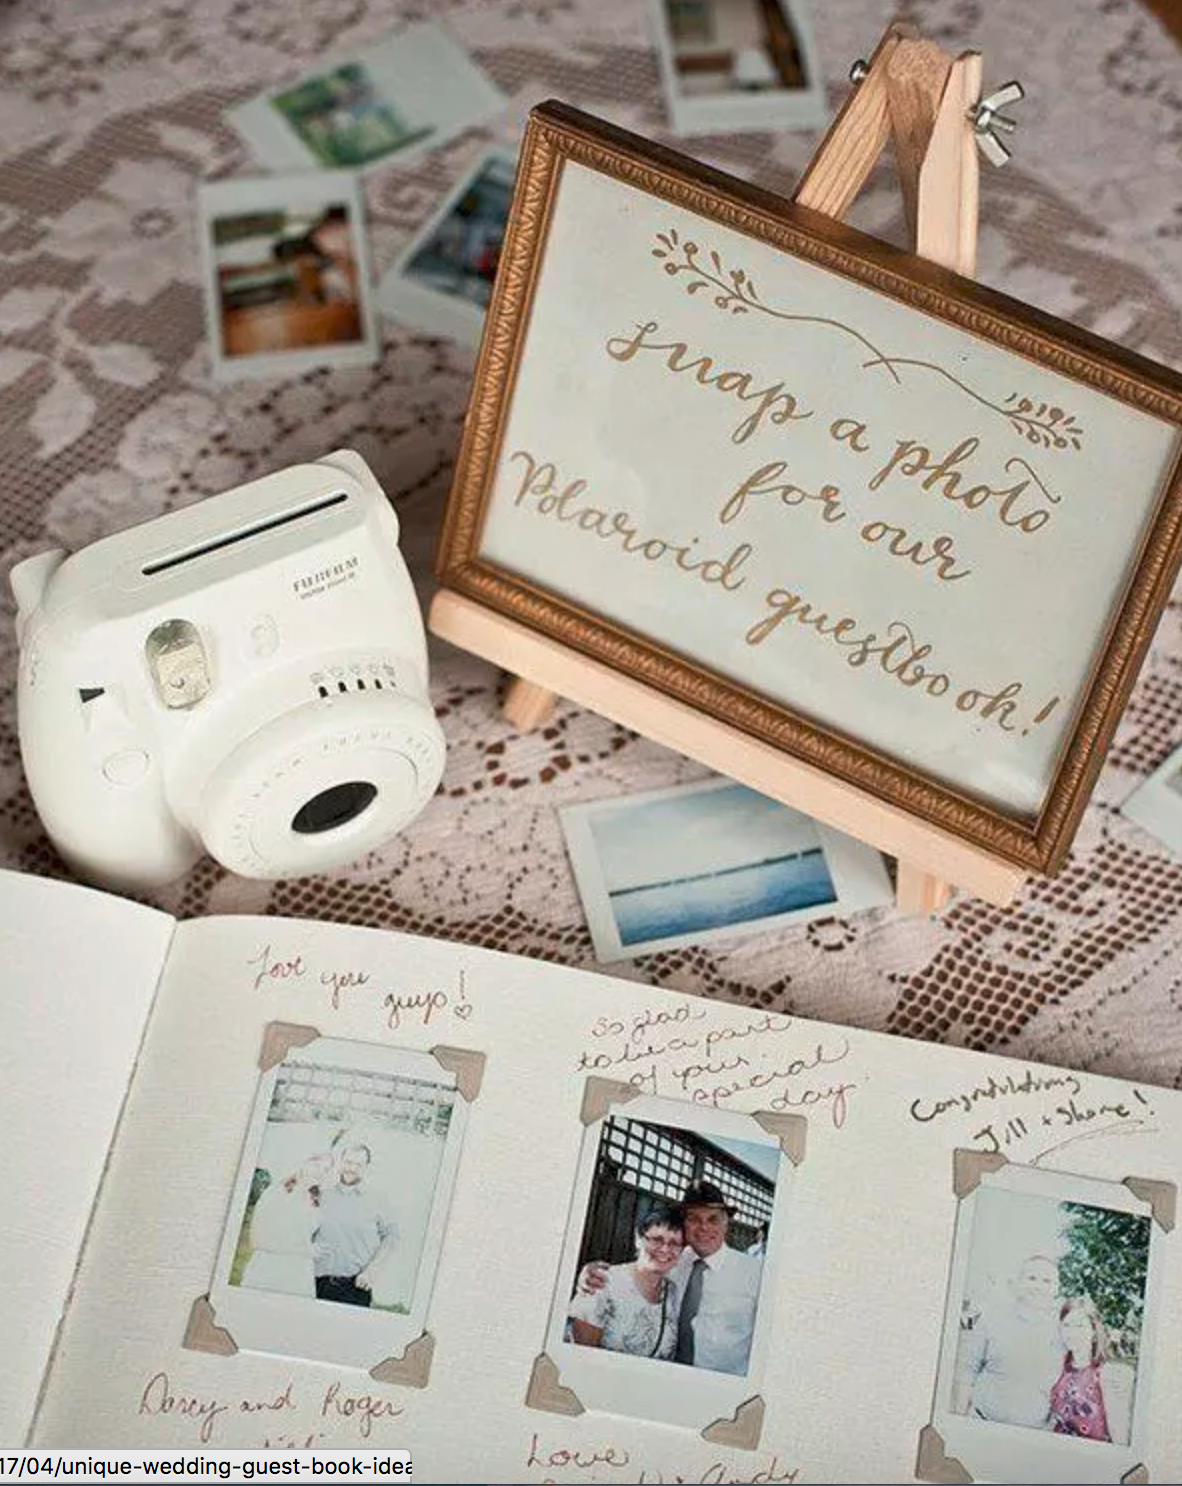 How I Want The Polaroid Guest Book To Look Like Photo Guest Book With Instax Camera On Display Scattere Polaroid Wedding Wedding Memorial Wedding Guest Book